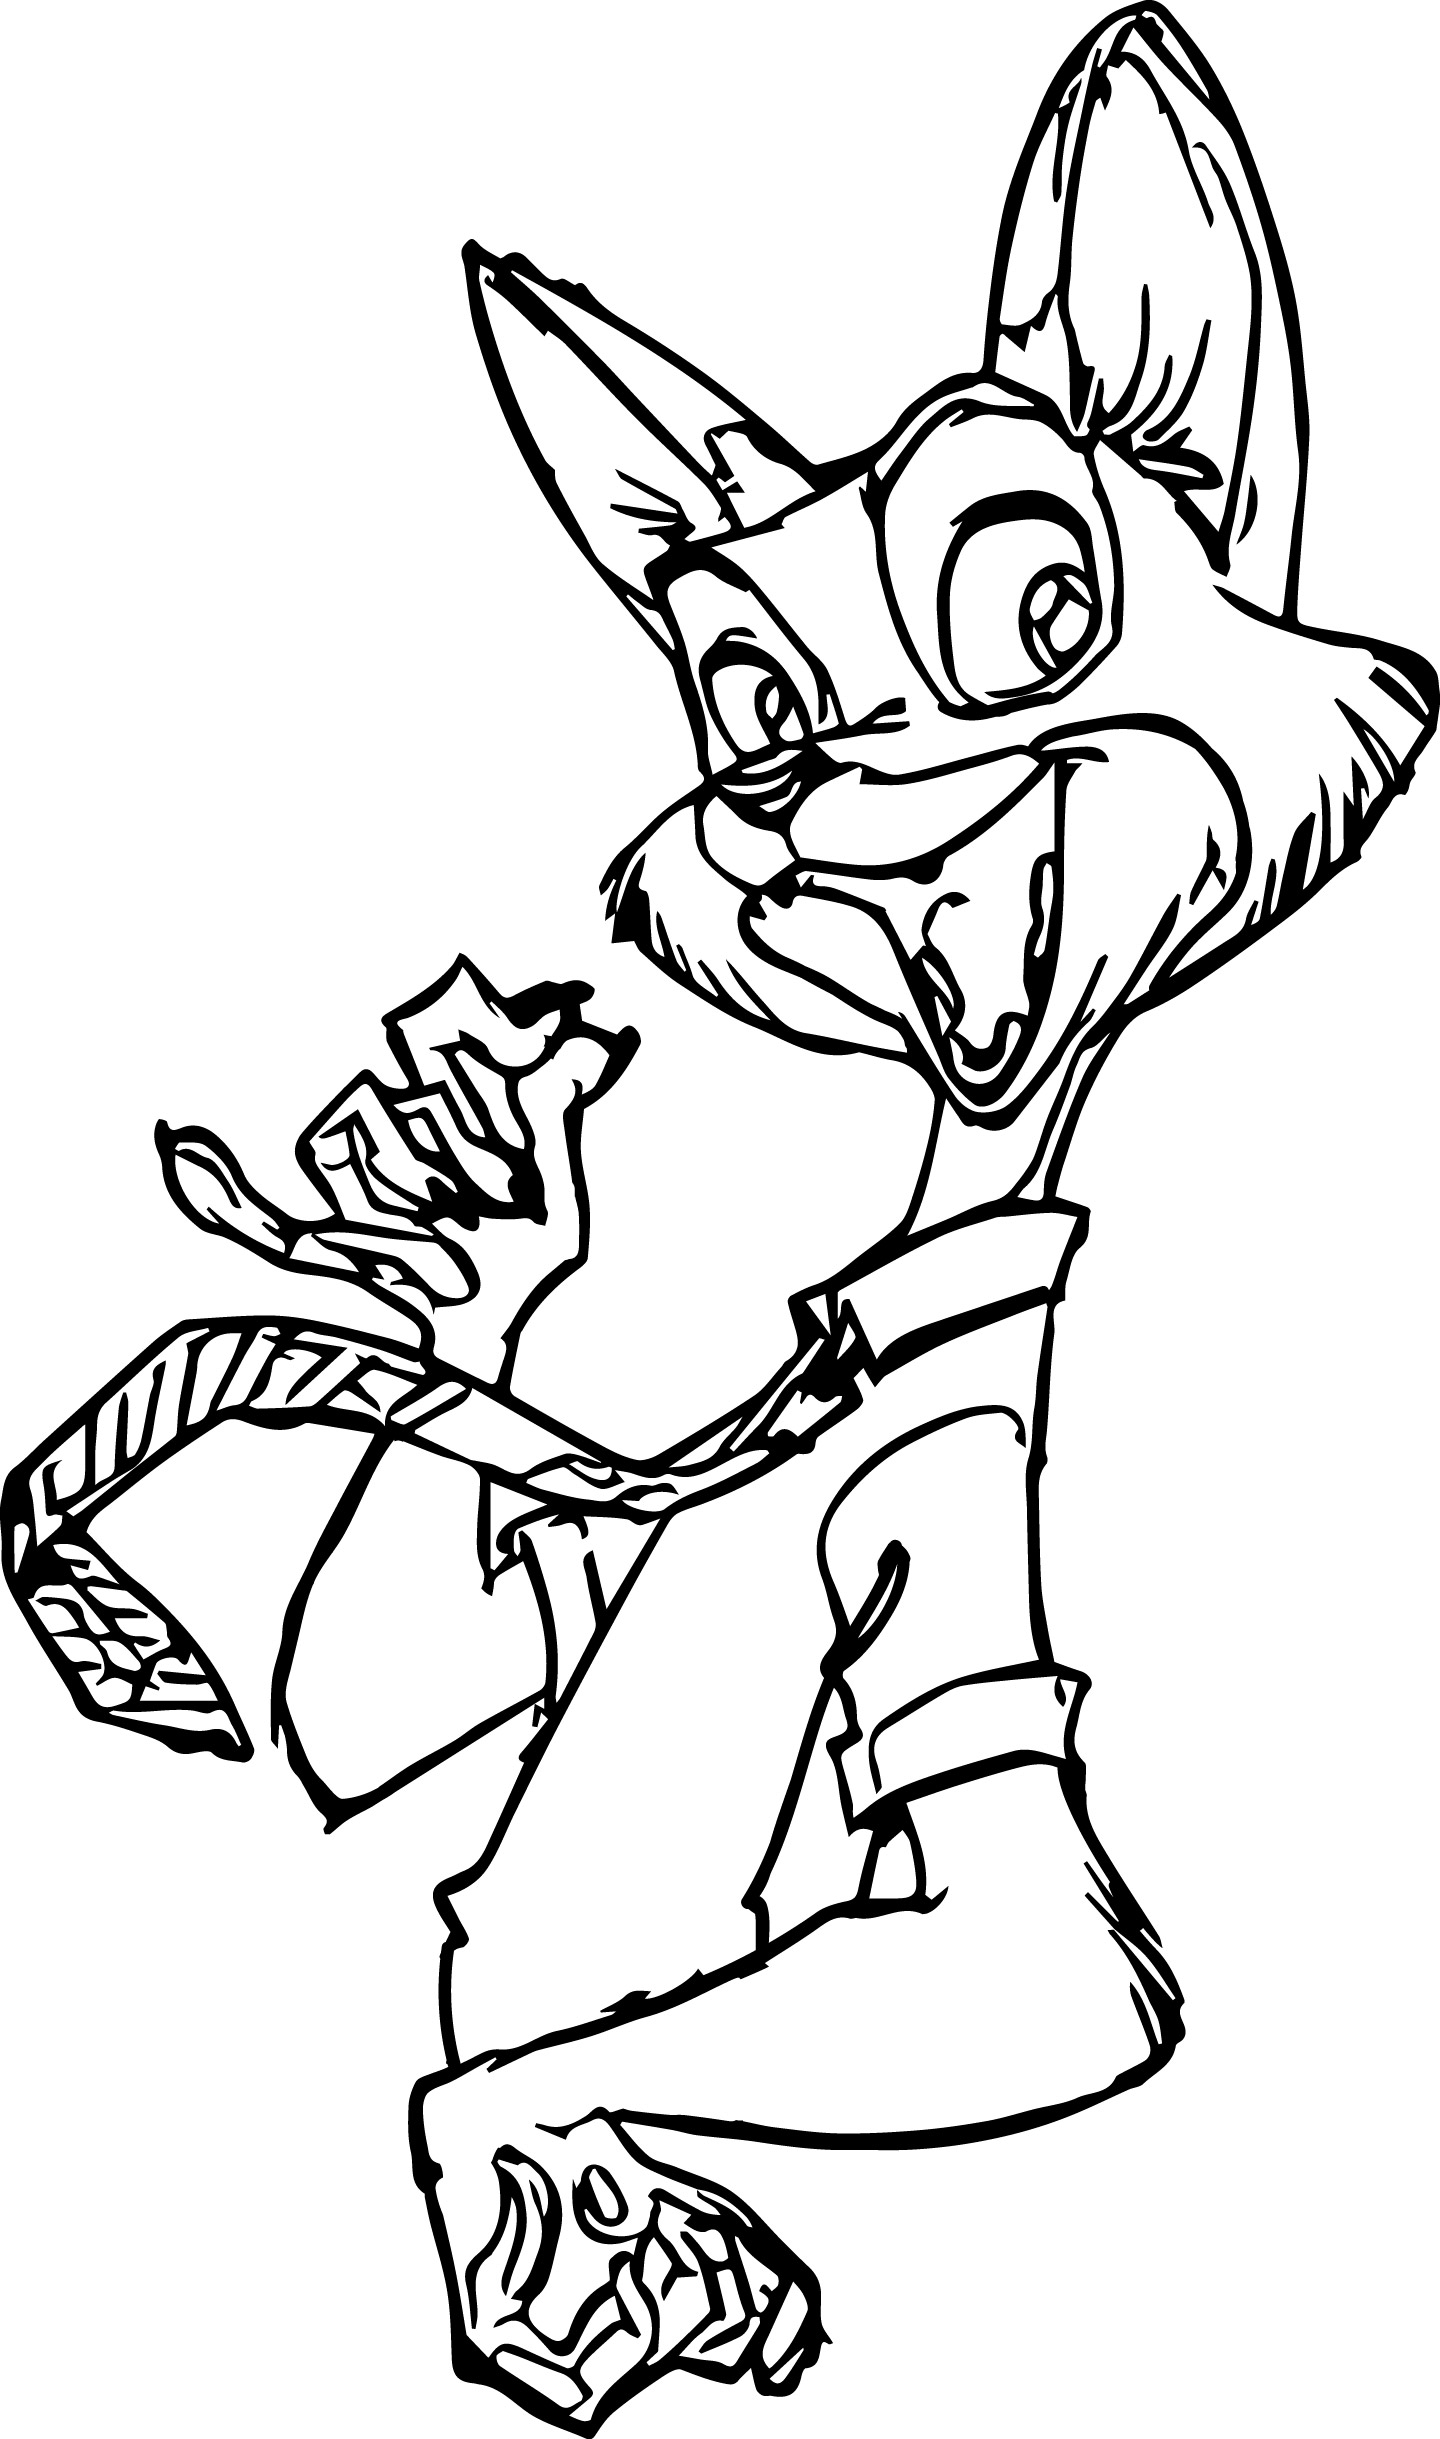 Nick Wilde Fox Zootopia Coloring Page